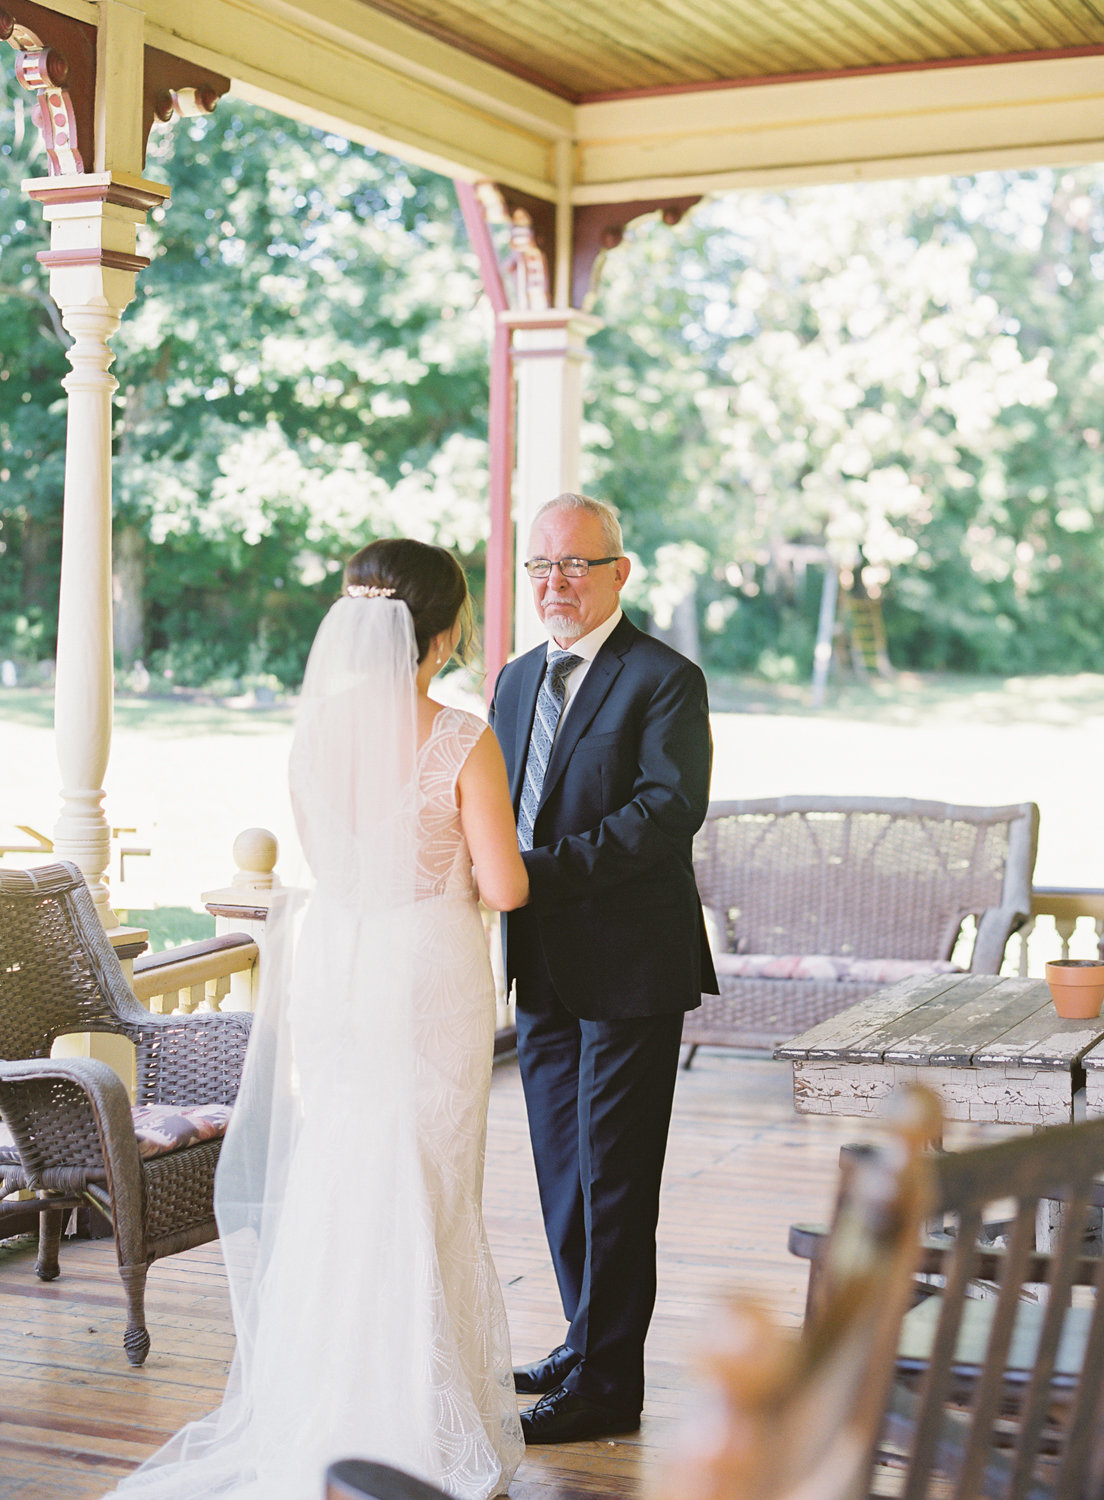 Jacqueline Anne Photography - Nova Scotia Backyard Wedding-21